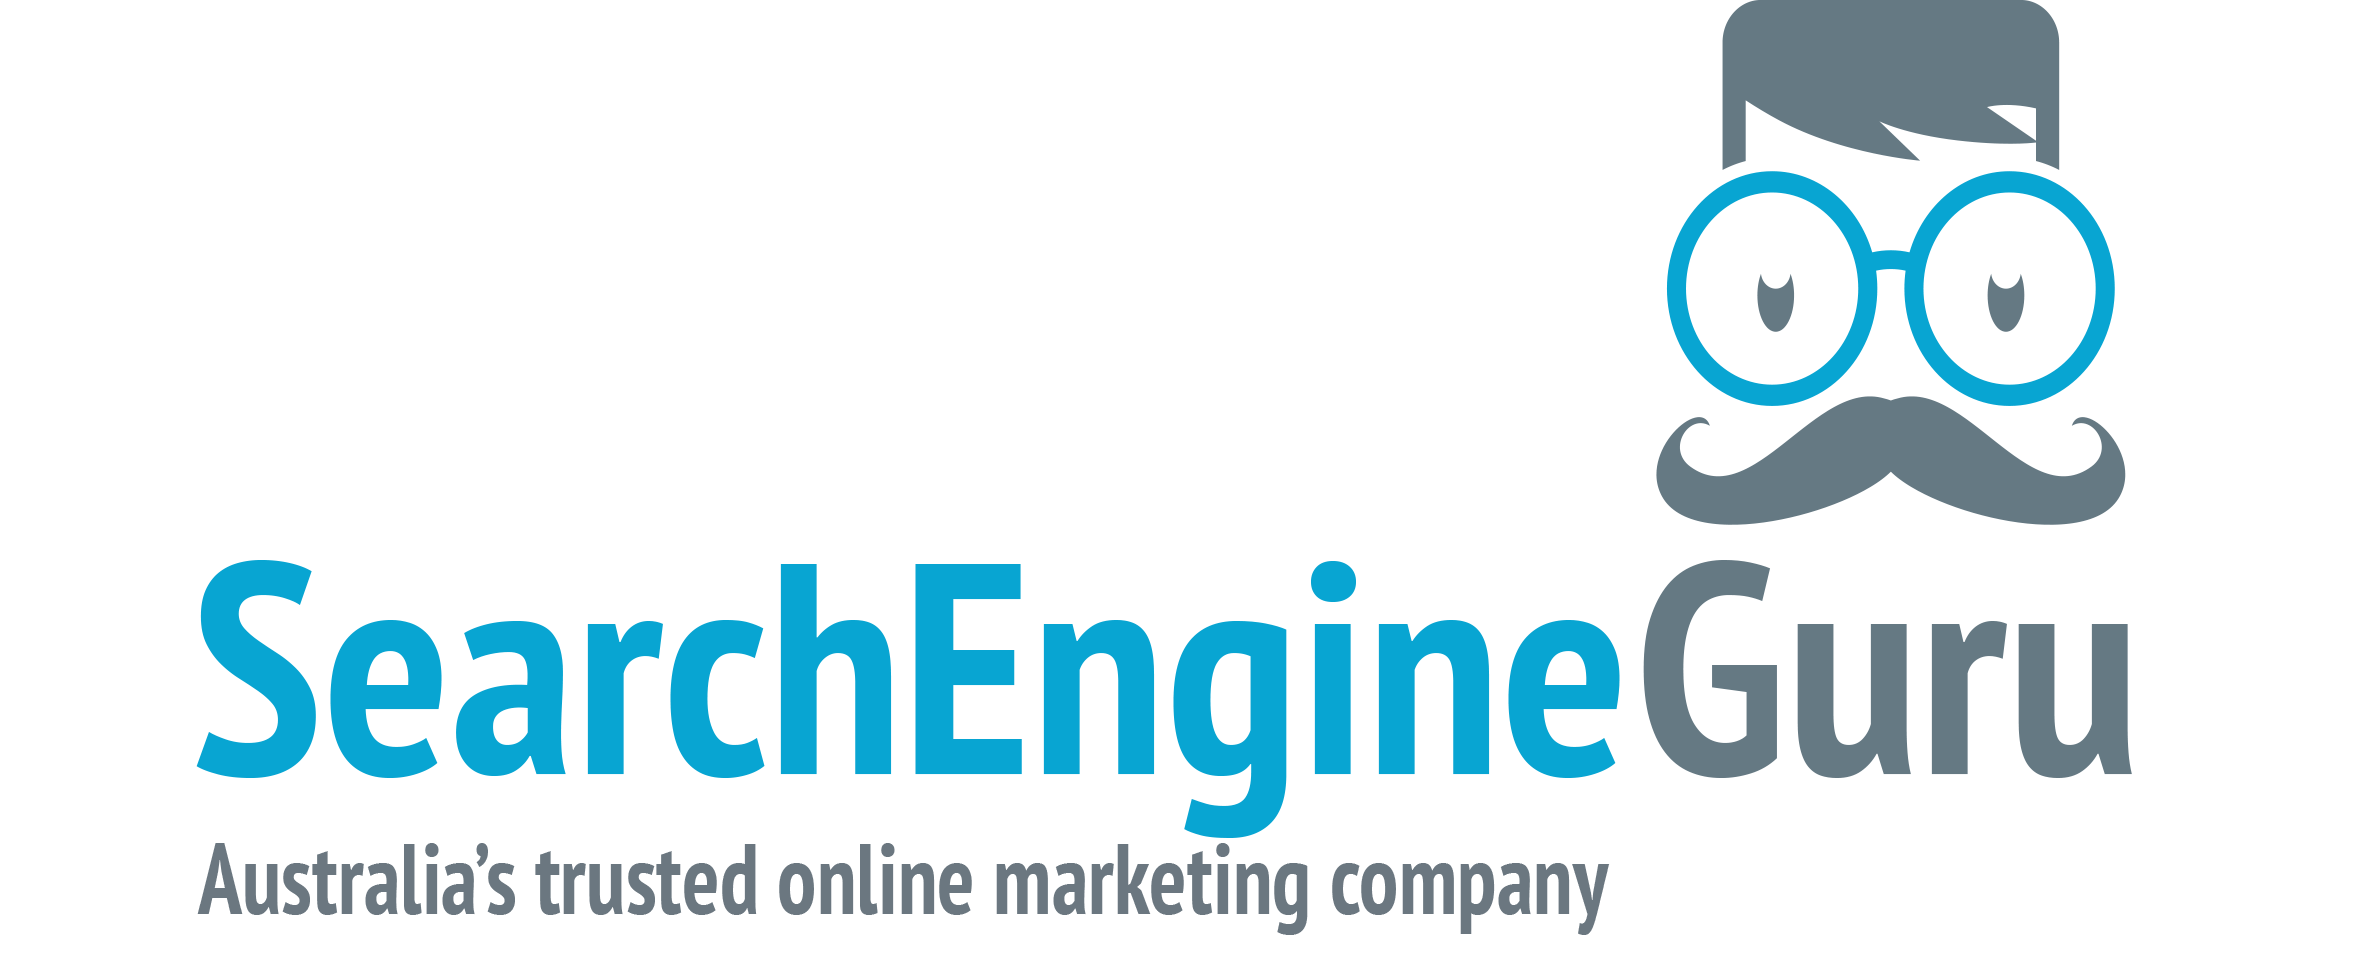 Search Engine Guru | Online Marketing Company in Australia